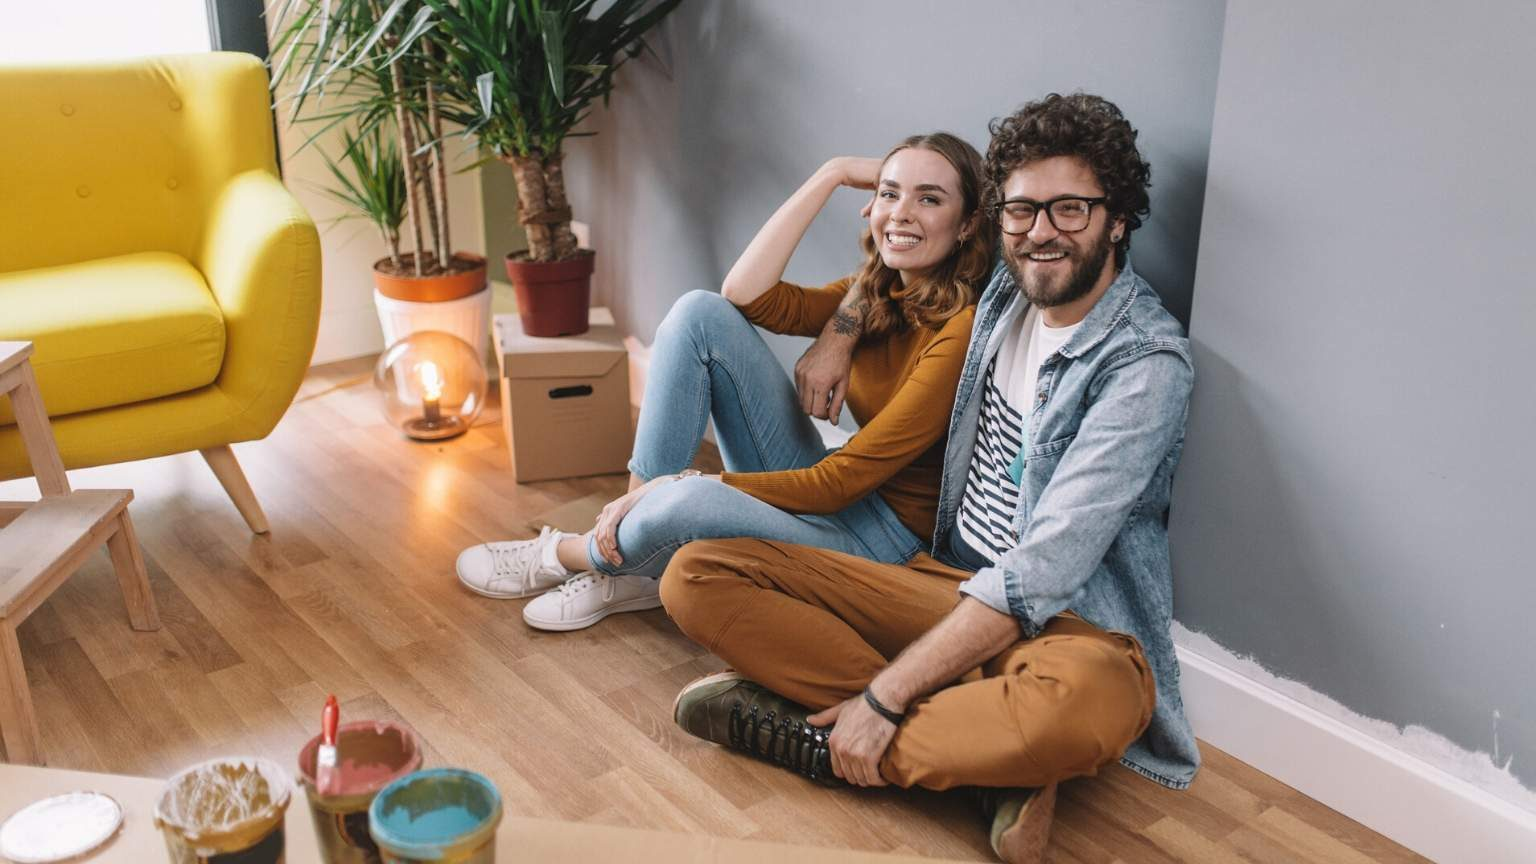 Couple hanging around after making improvements in the house